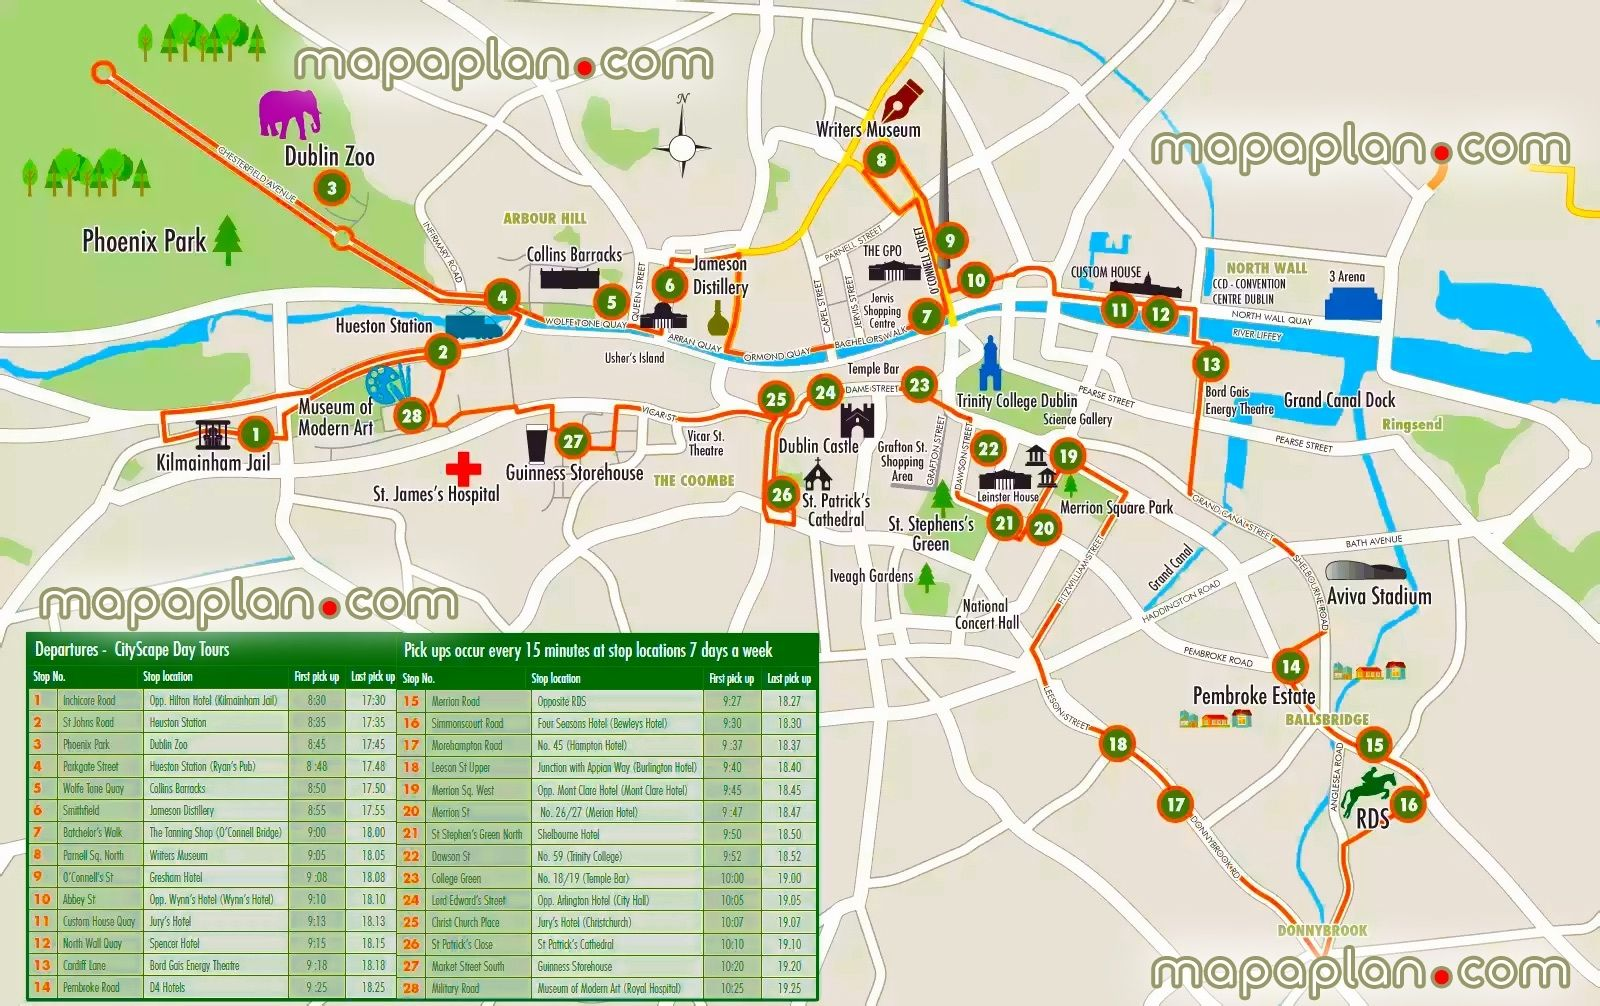 Map Of Ireland Tourist Attractions.Dublin Tourist Attraction Dublin Maps Top Tourist Attractions Free